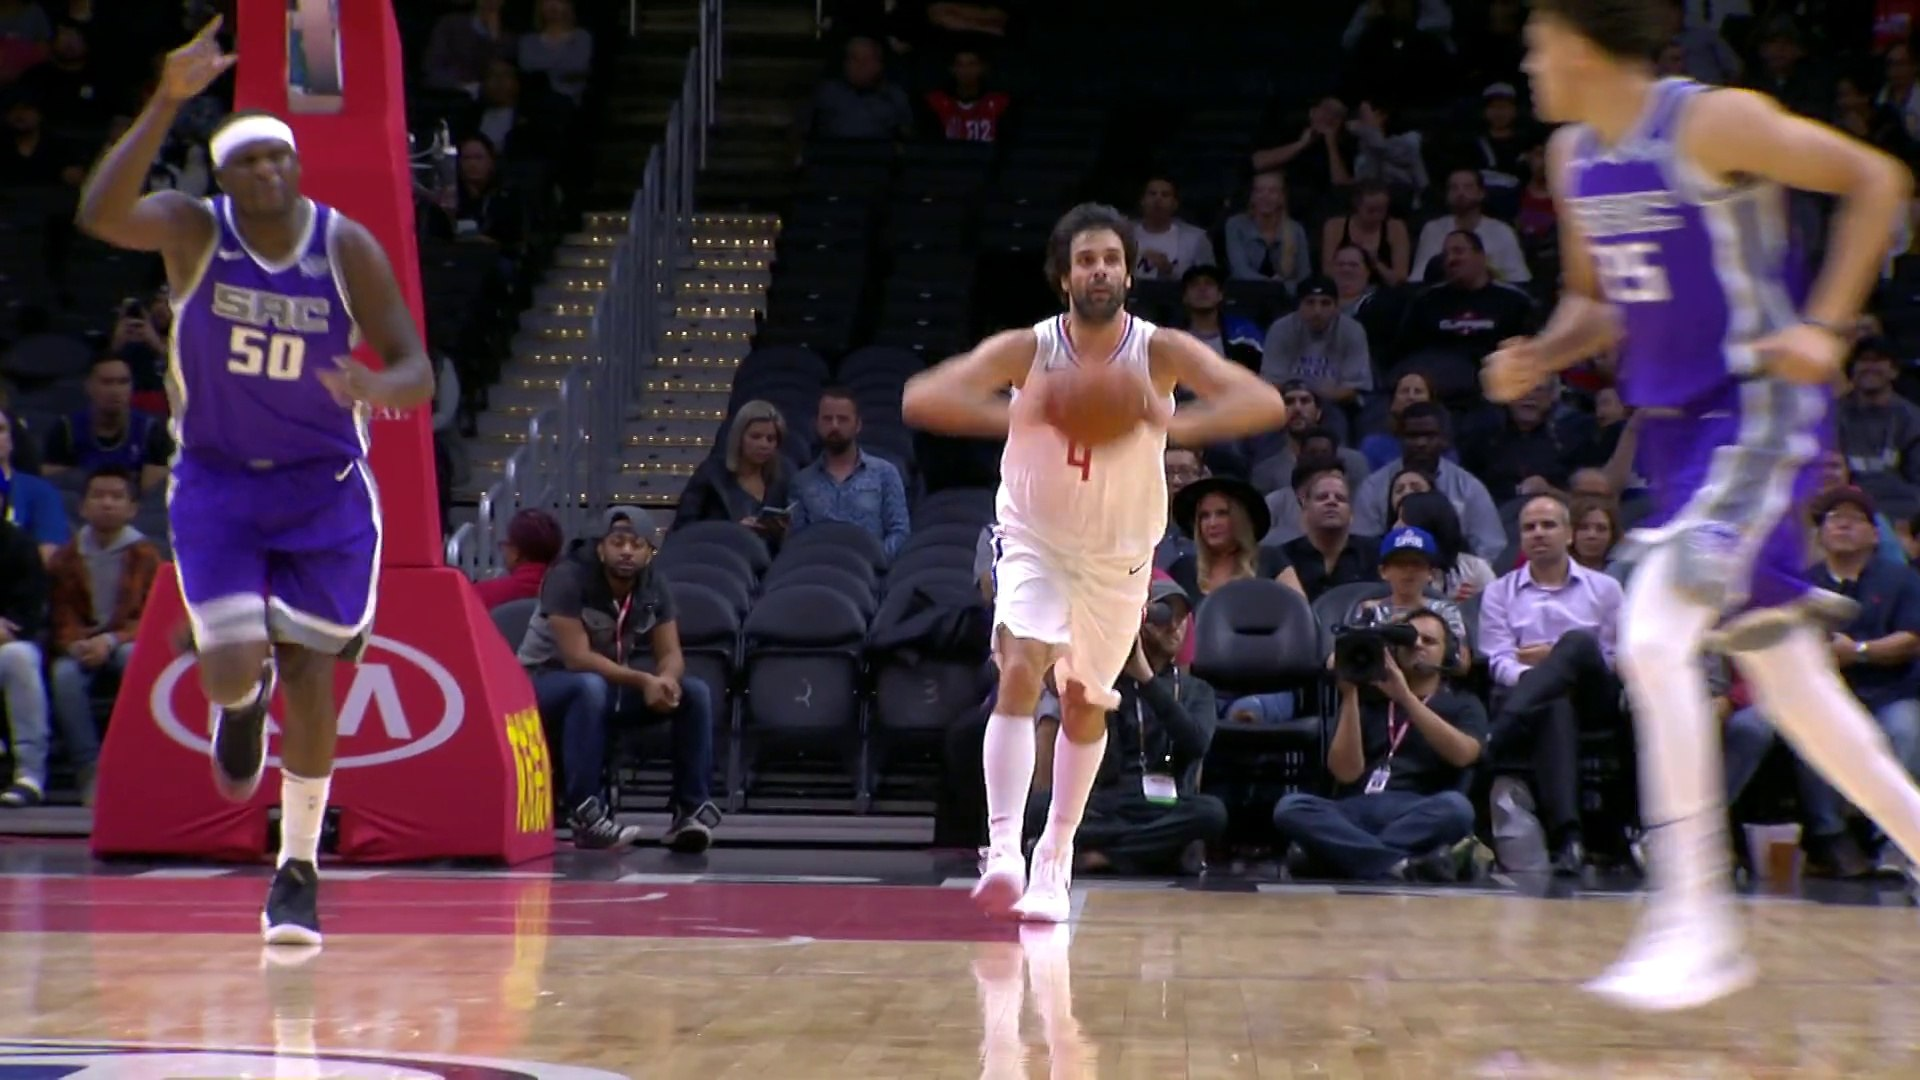 Miloš Teodosić Dropping Dimes - Kings vs Clippers - Oct 13, 2017